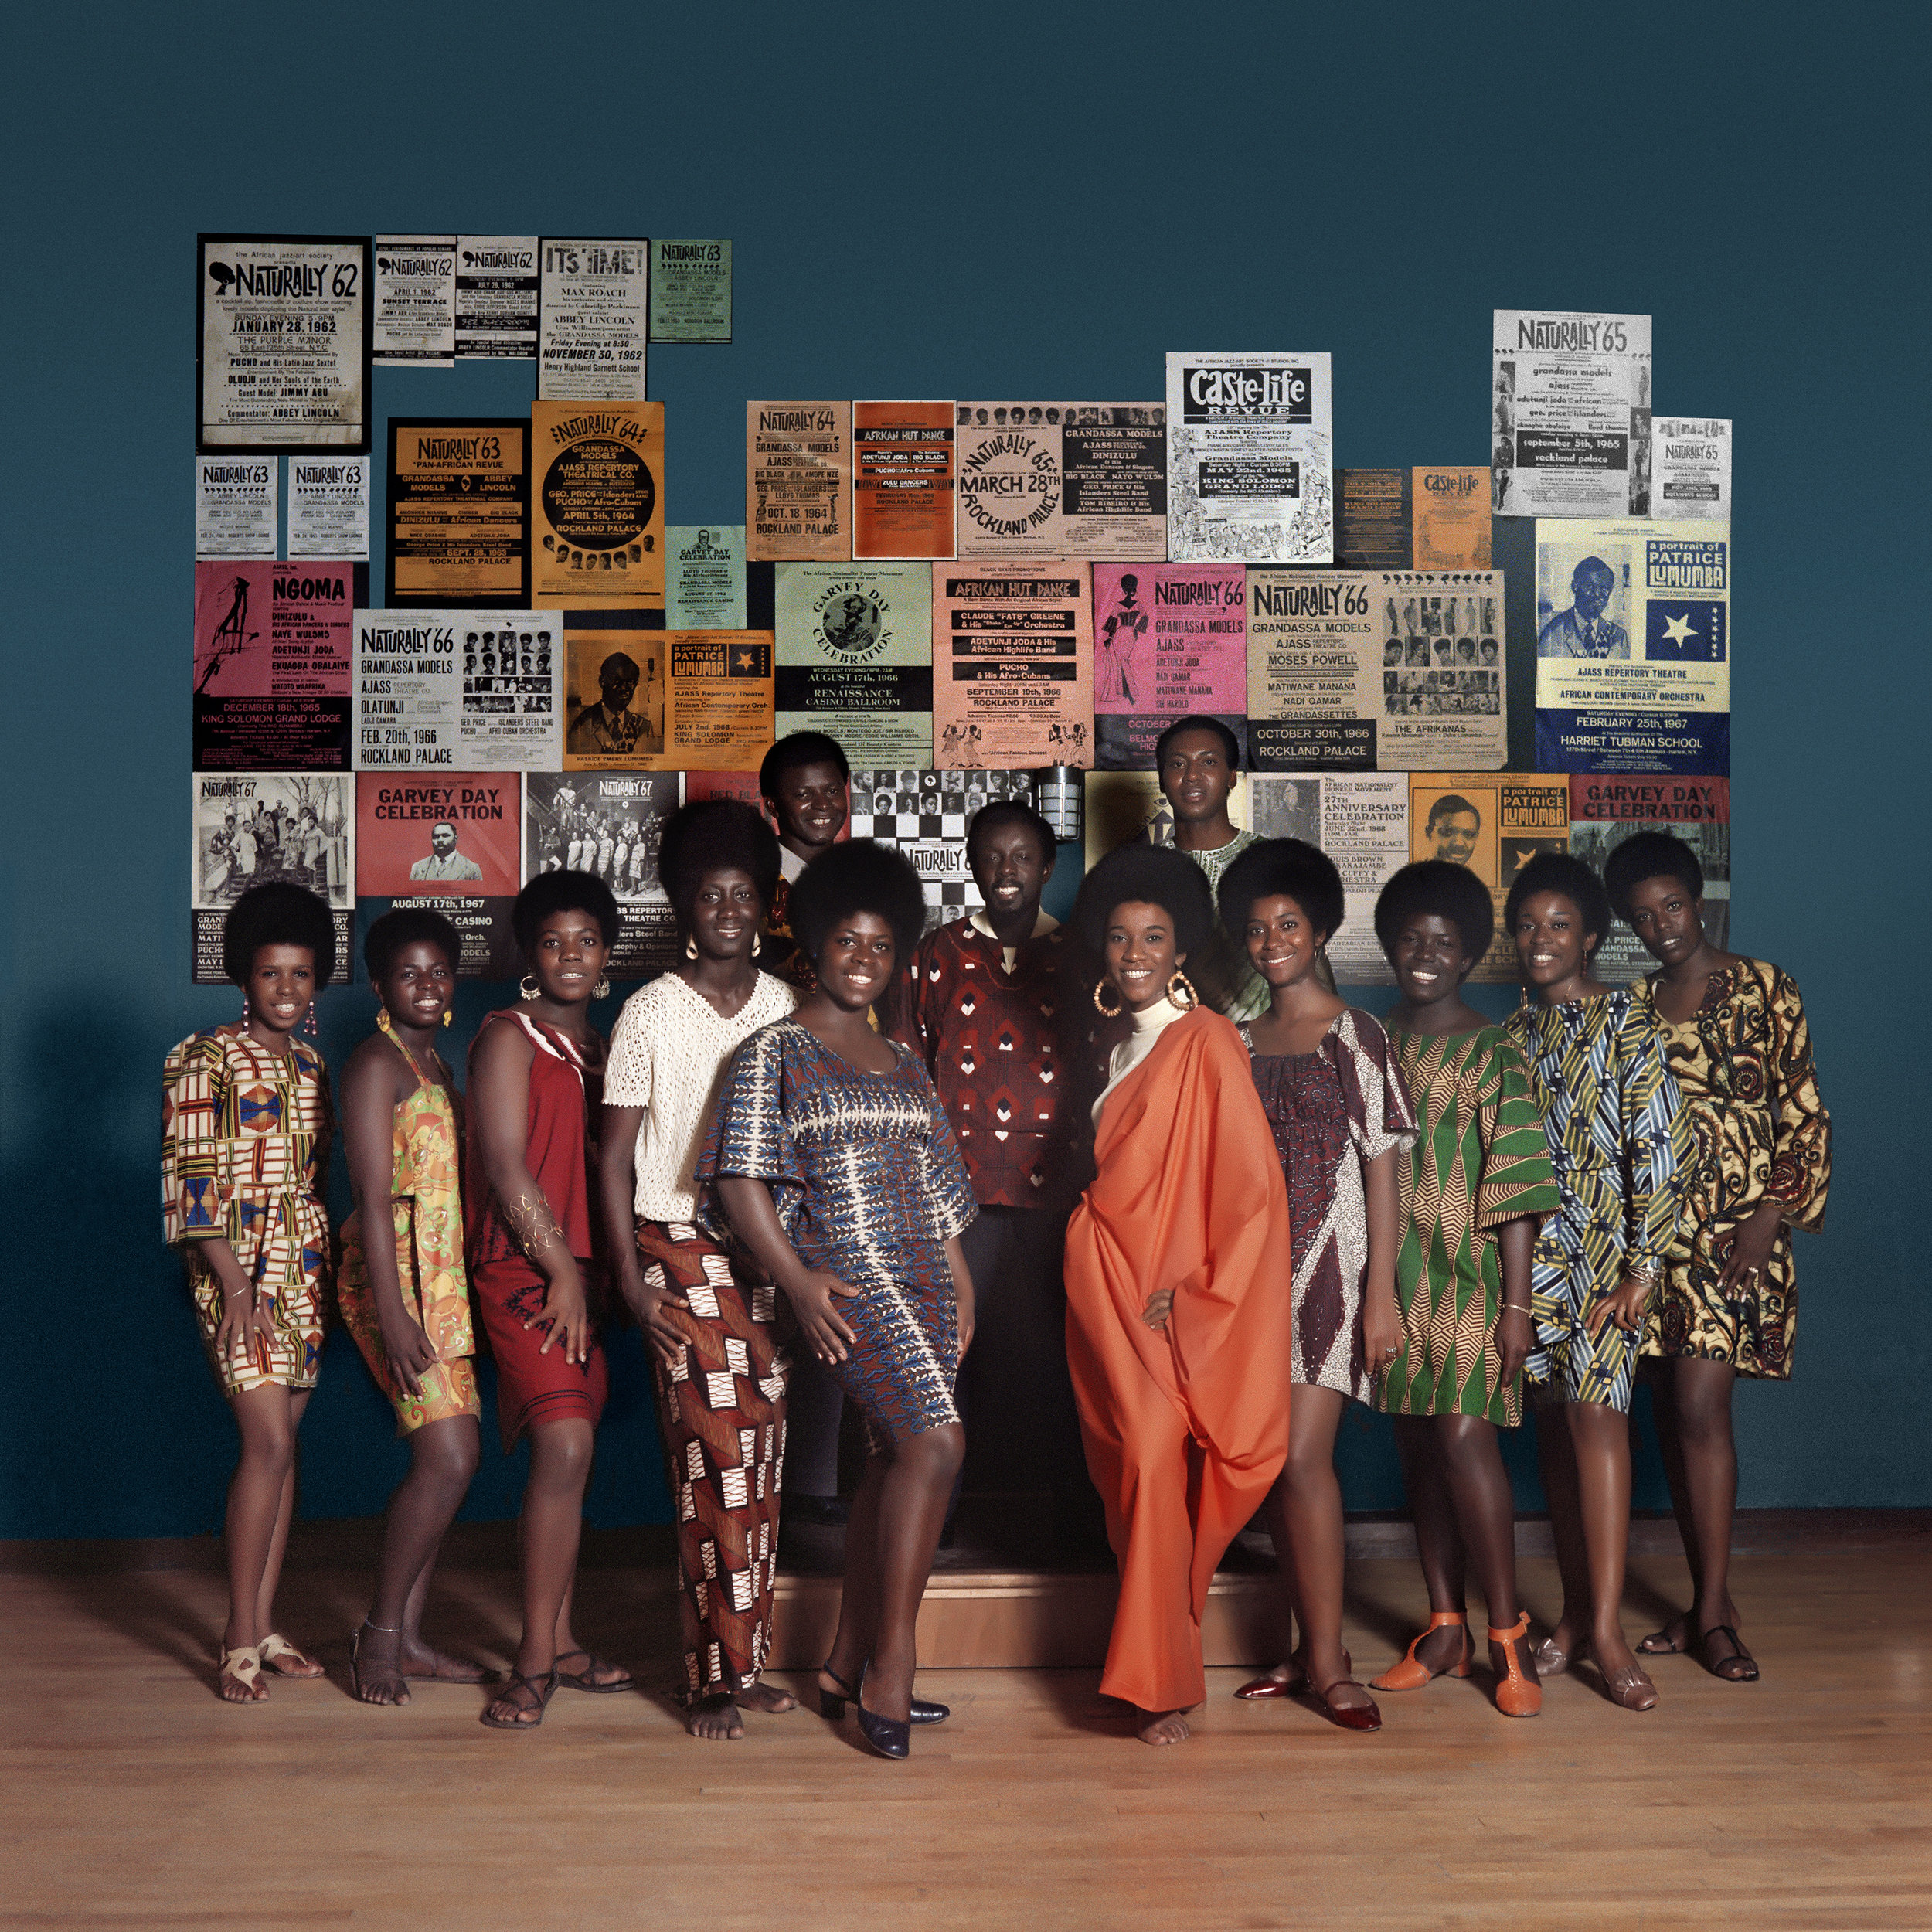 "Kwame Brathwaite. ""Naturally '68"" photo shoot, featuring Grandassa Models and founding members of AJASS. Back row includes: Eleanor Ballard, far left; Sikolo Brathwaite, third from left; Juanita McLean, fourth from left; Zeta Gathers, fifth from left; and Pat (last name unknown), third from right. Front row, left to right: Klytus Smith, Frank Adu, Bob Gumbs, Elombe Brath, and Ernest Baxter. Apollo Theater, Harlem, ca. 1968. Courtesy of the artist and Philip Martin Gallery, Los Angeles."